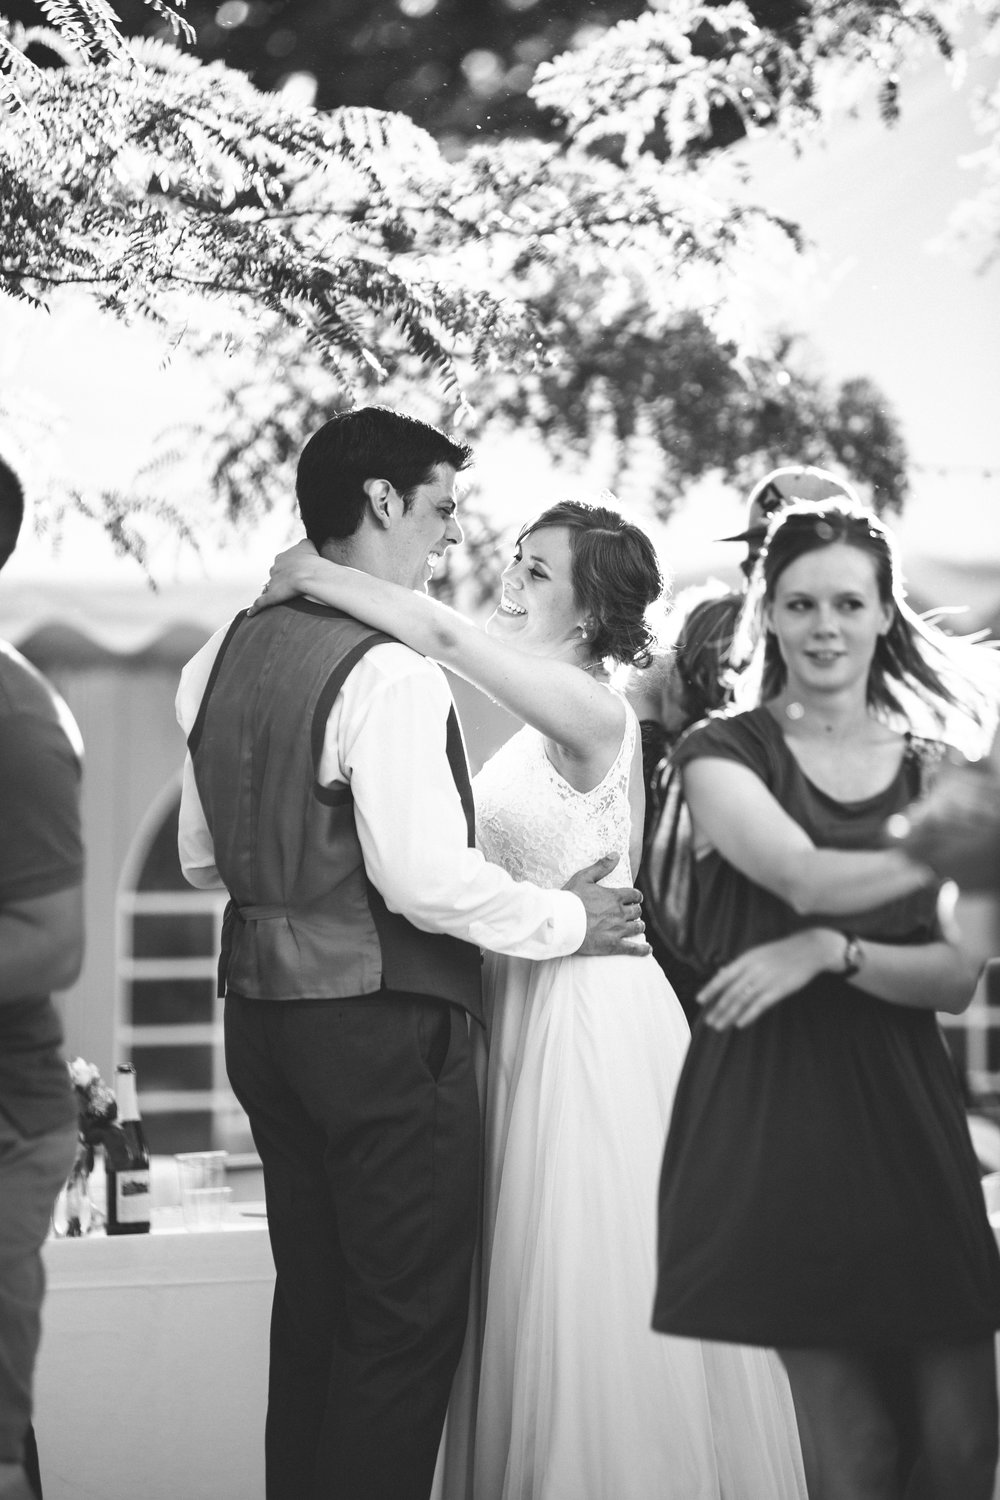 Jordan & Shantel Married - Idaho - Corrie Mick Photography-327.jpg